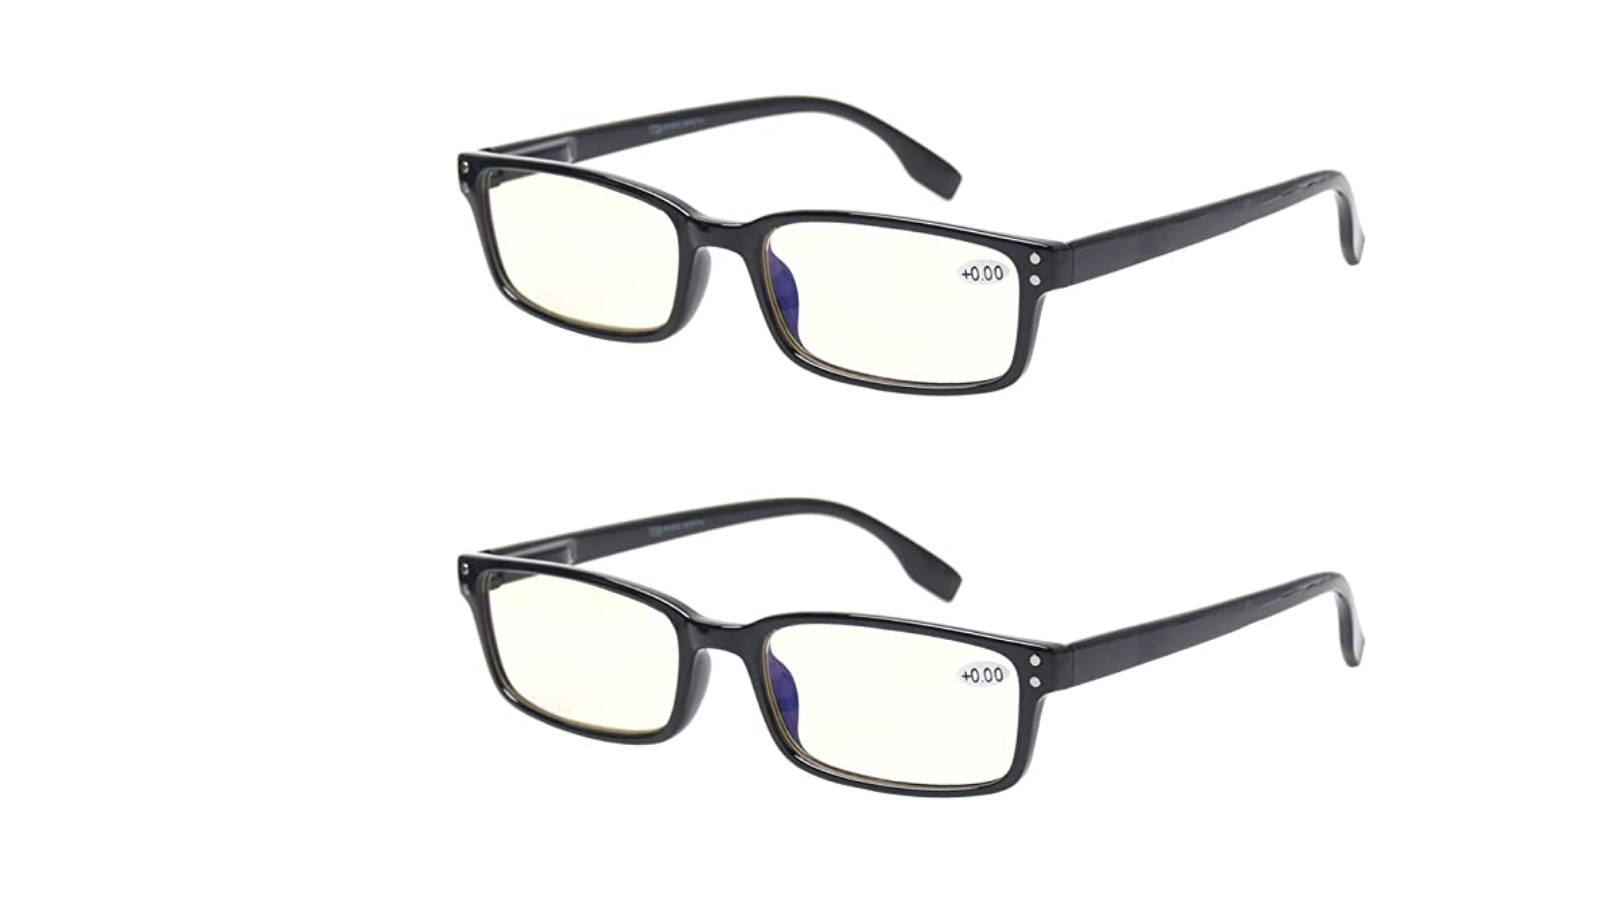 Two pairs of glasses with black frames and slightly yellow lenses